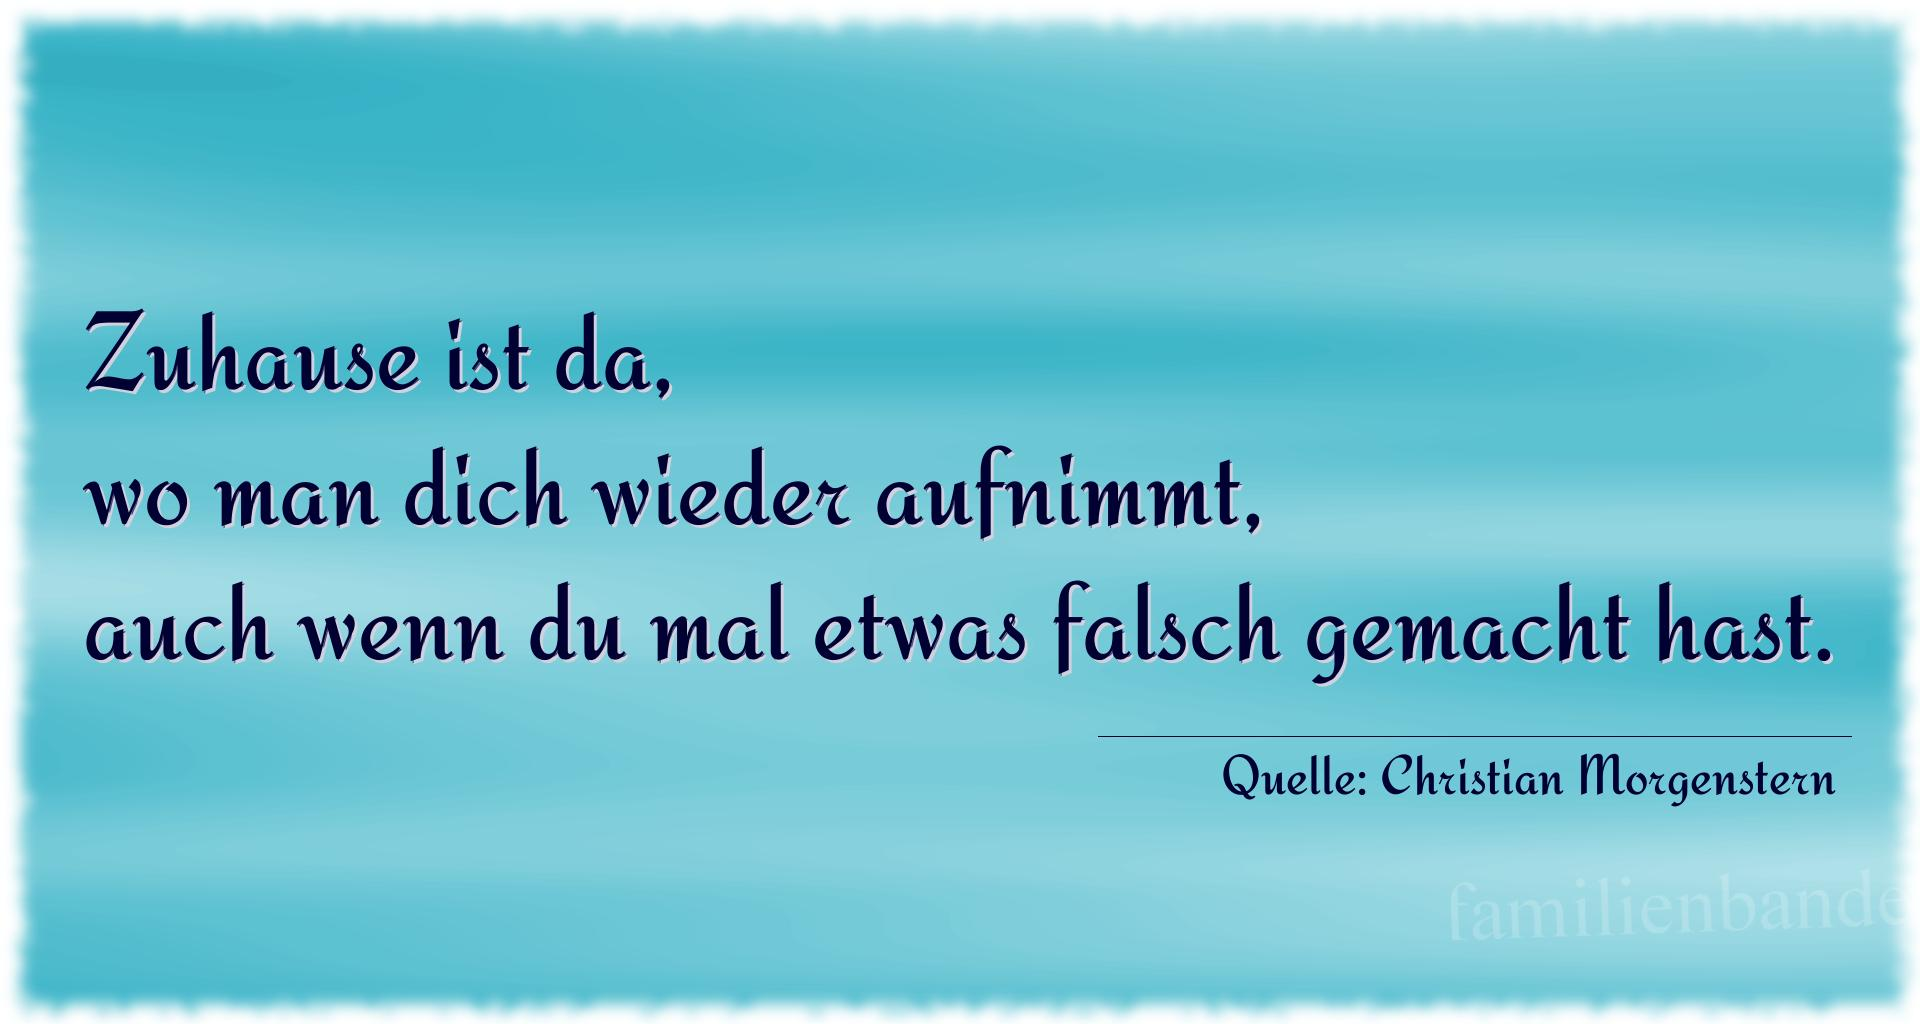 Familienspruch Nr. 334, Quelle Christian Morgenstern